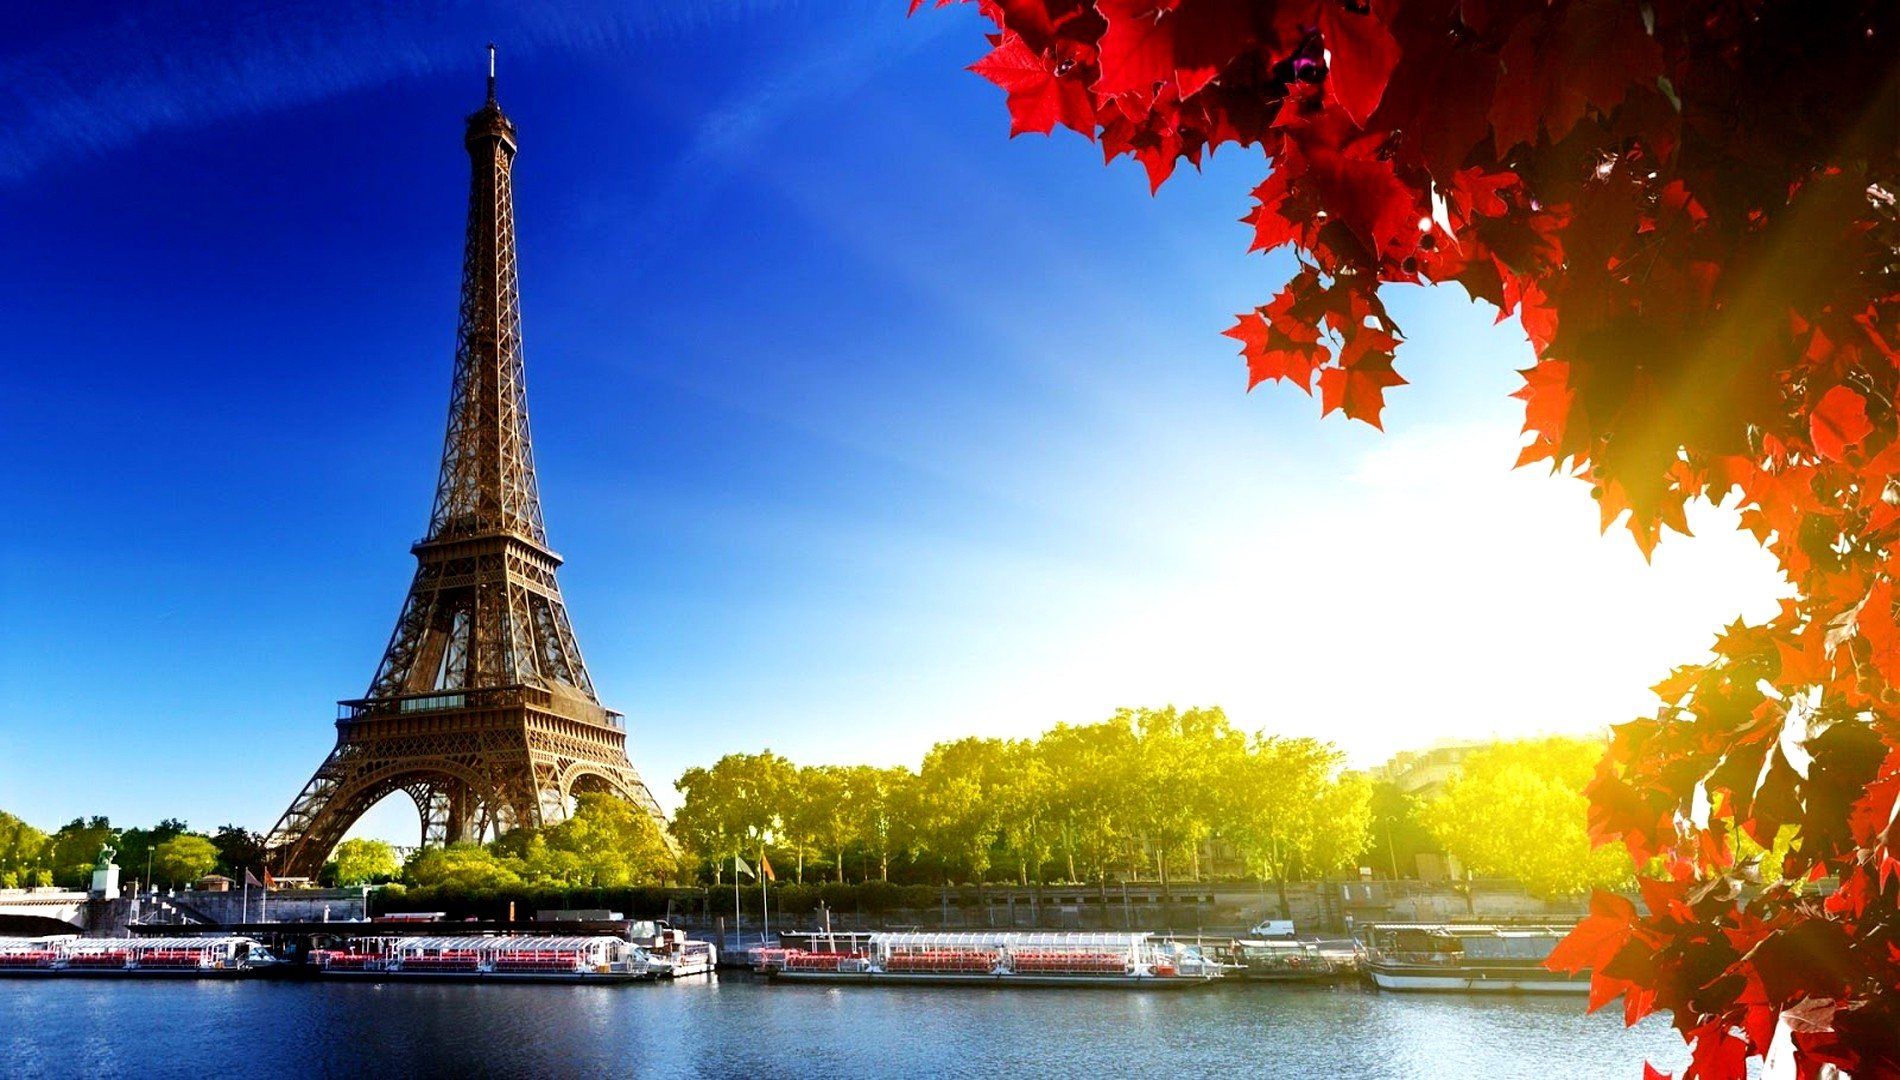 download free mind blowing summer paris river picture for mobile